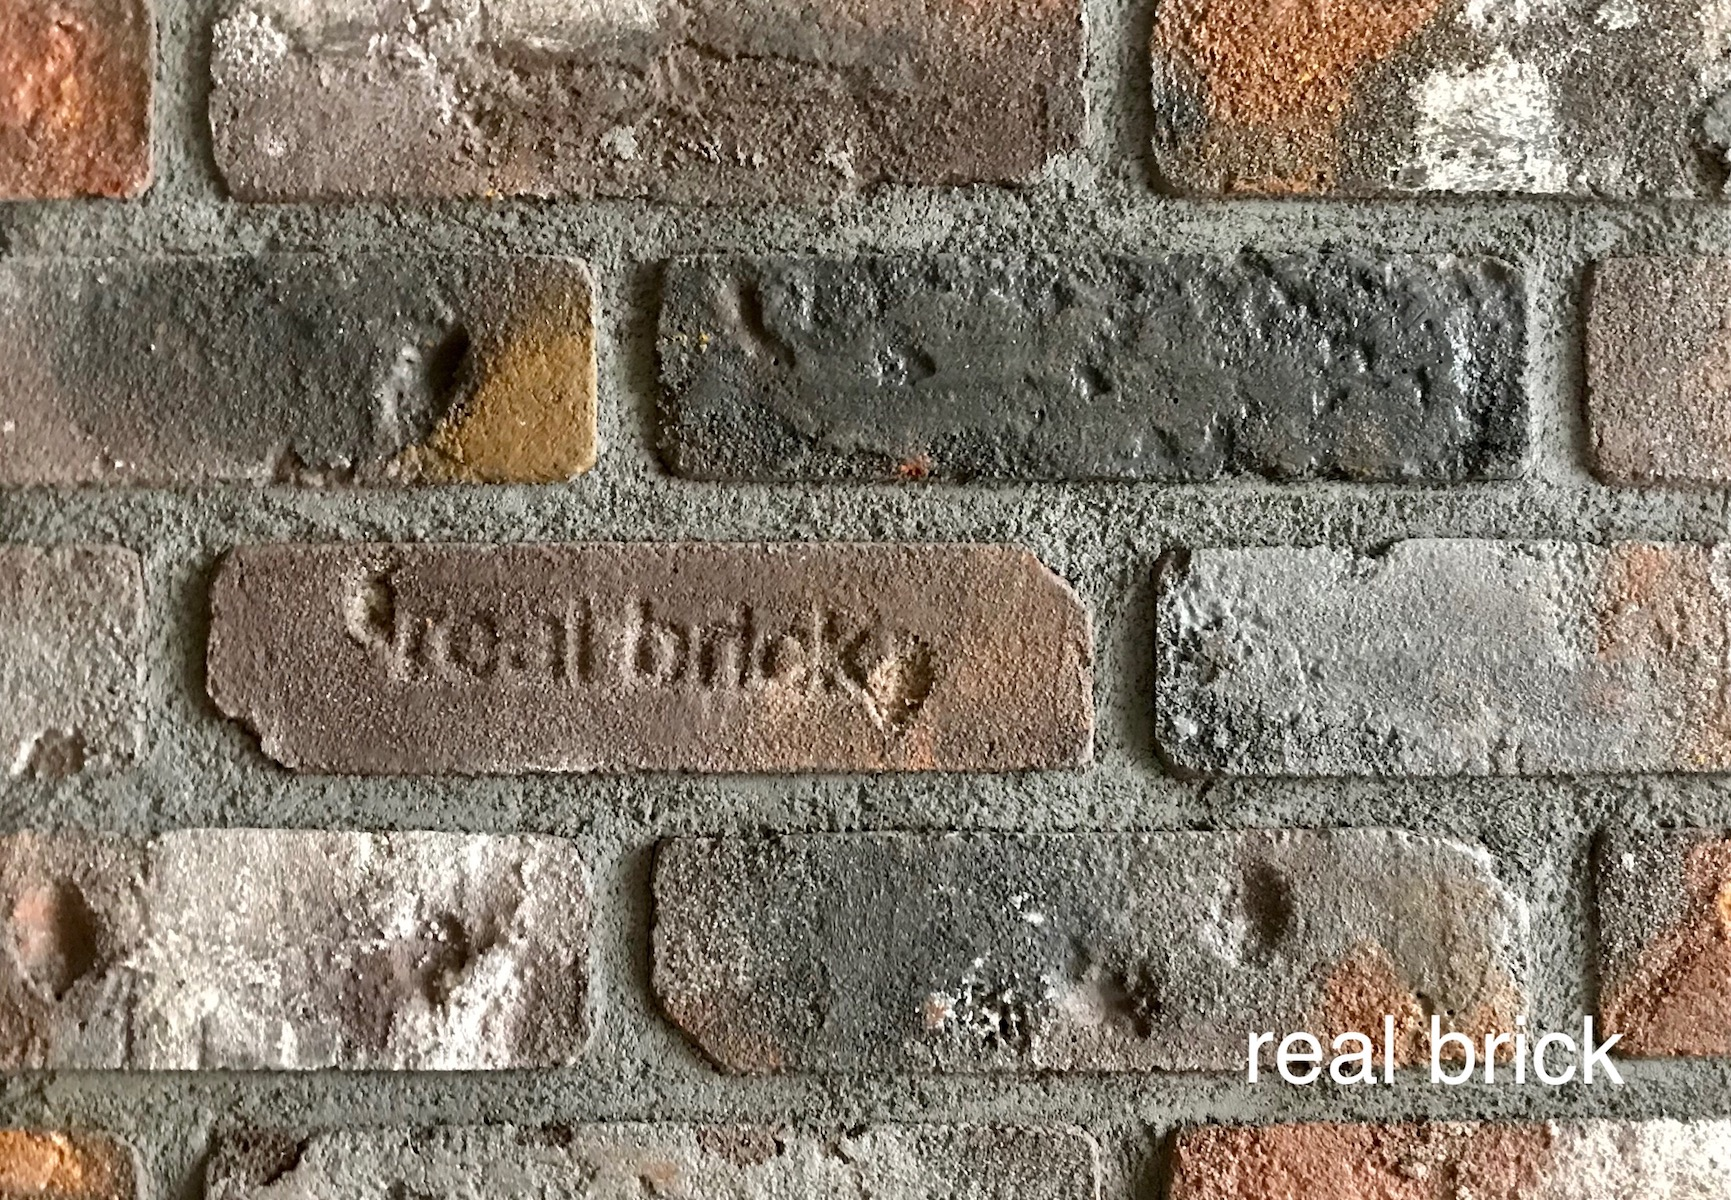 Real brick 6 antiq